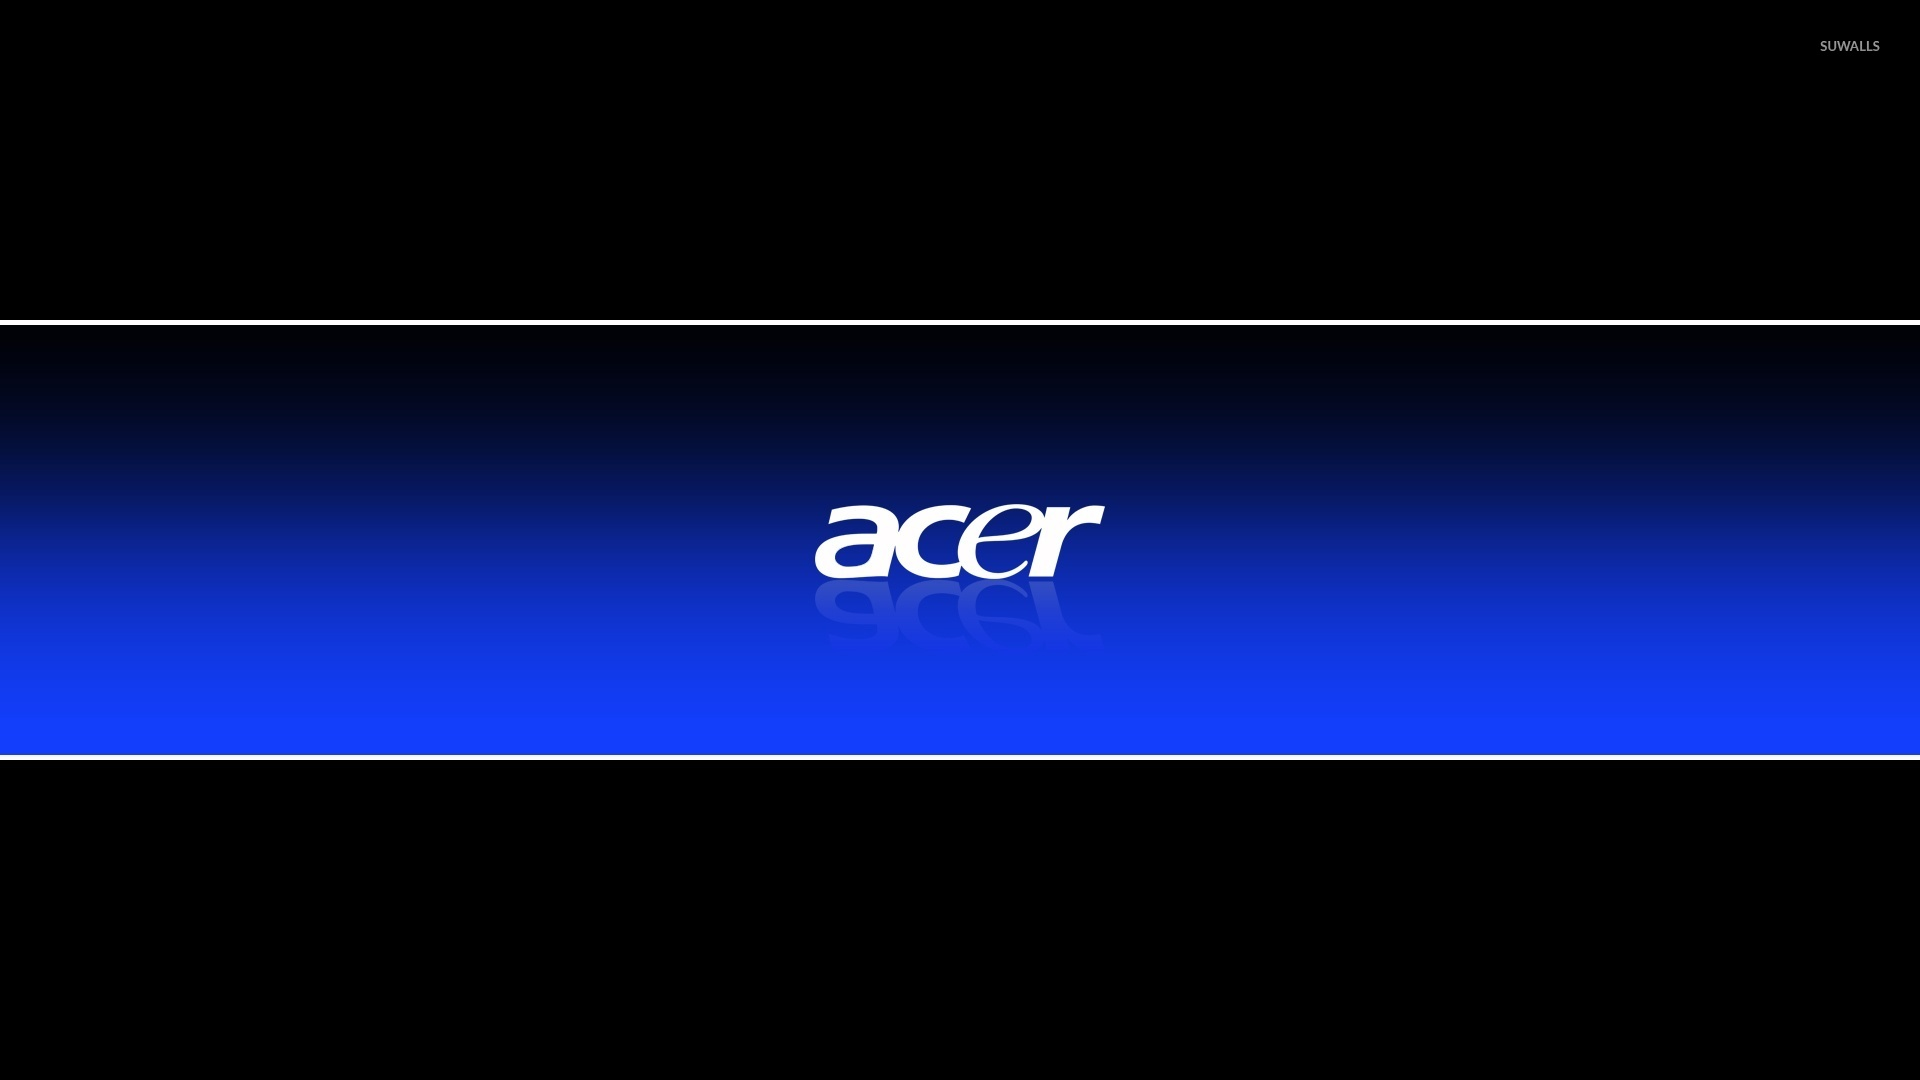 Acer Wallpaper Computer Wallpapers 9747